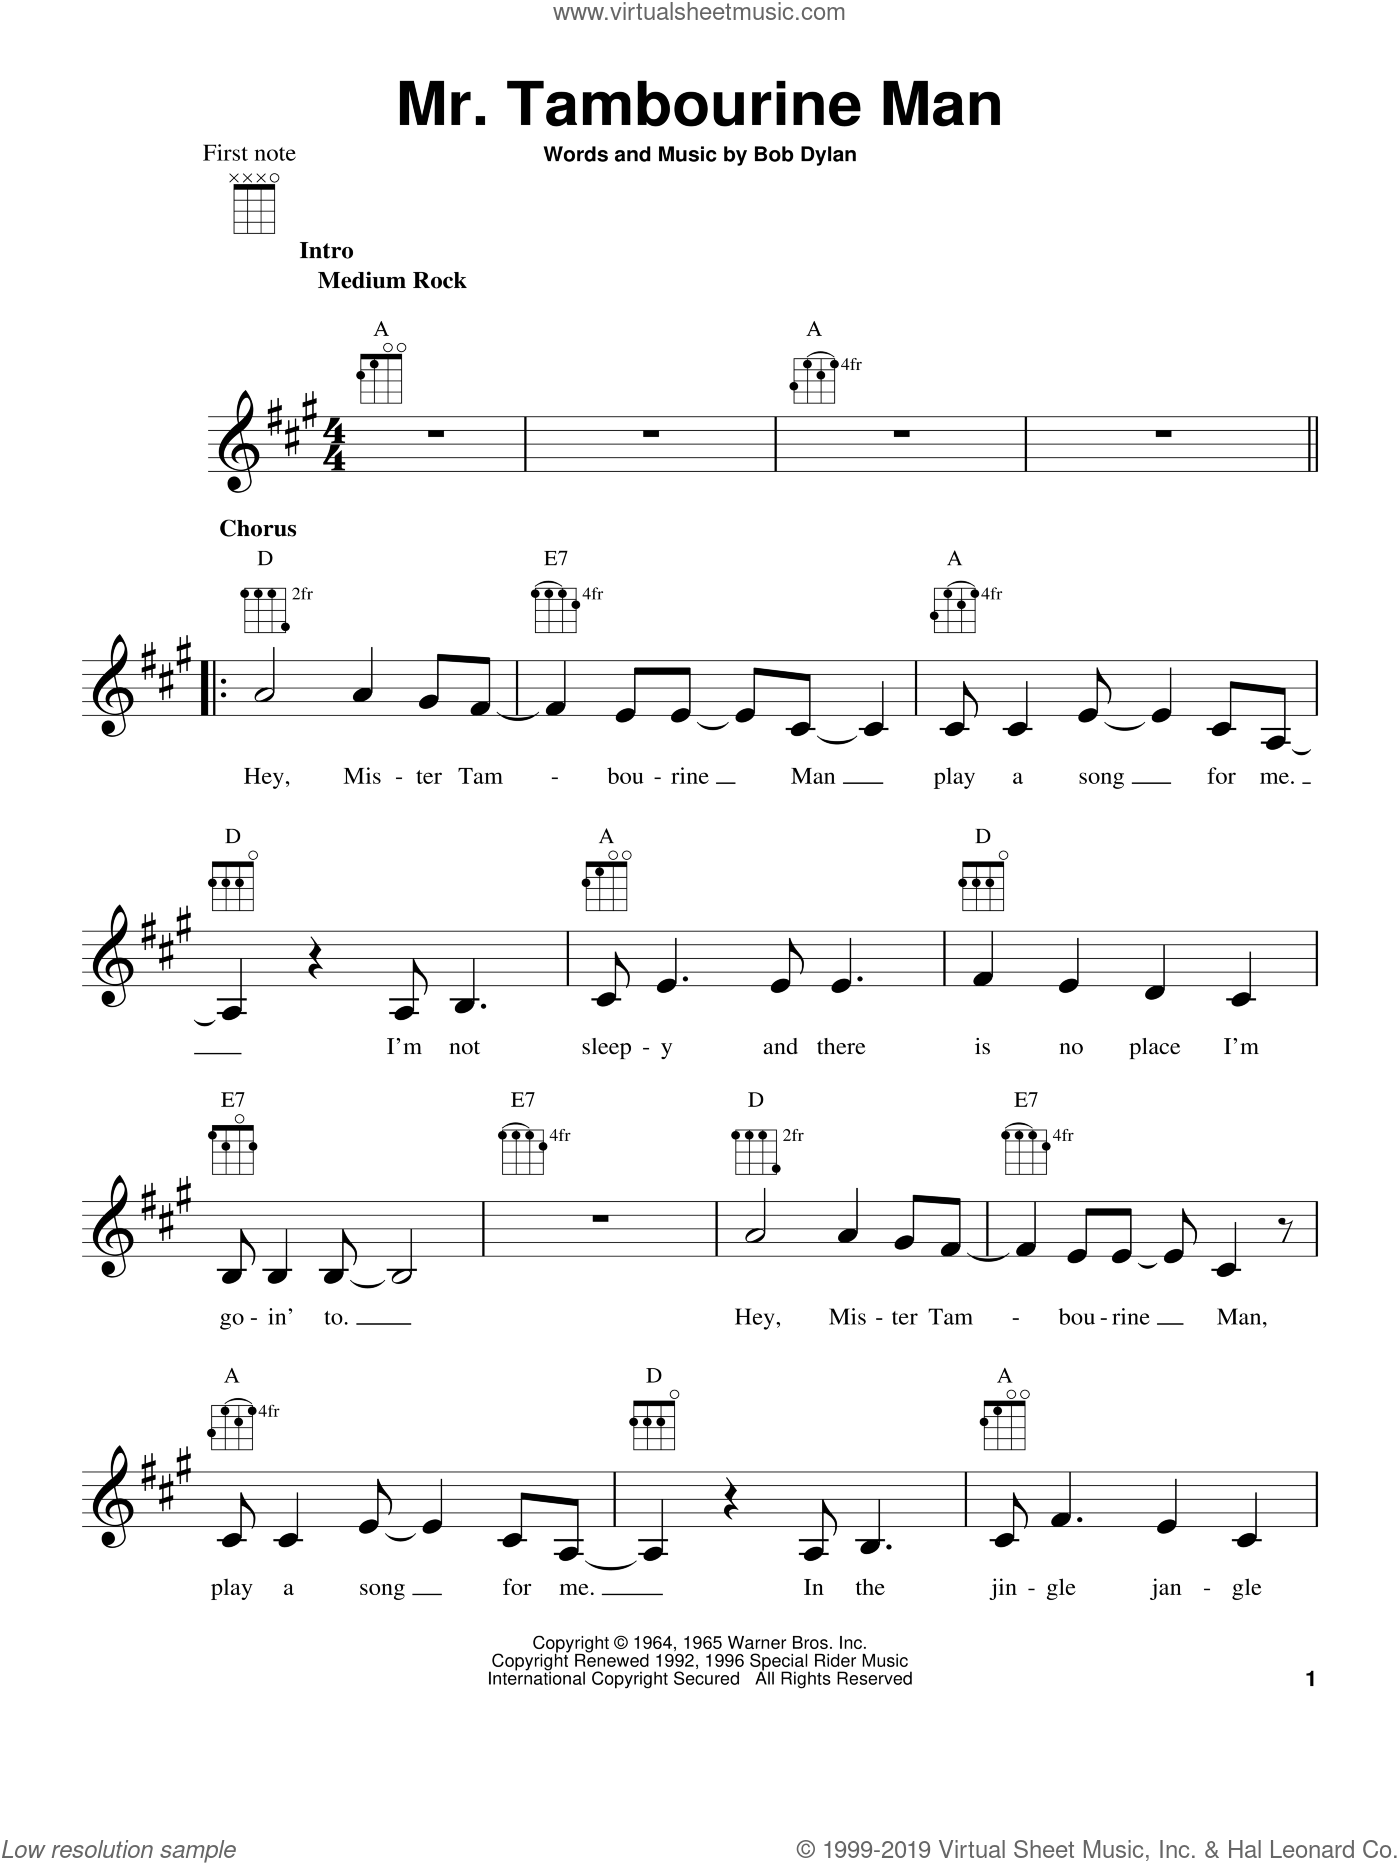 Mr. Tambourine Man sheet music for ukulele by Bob Dylan